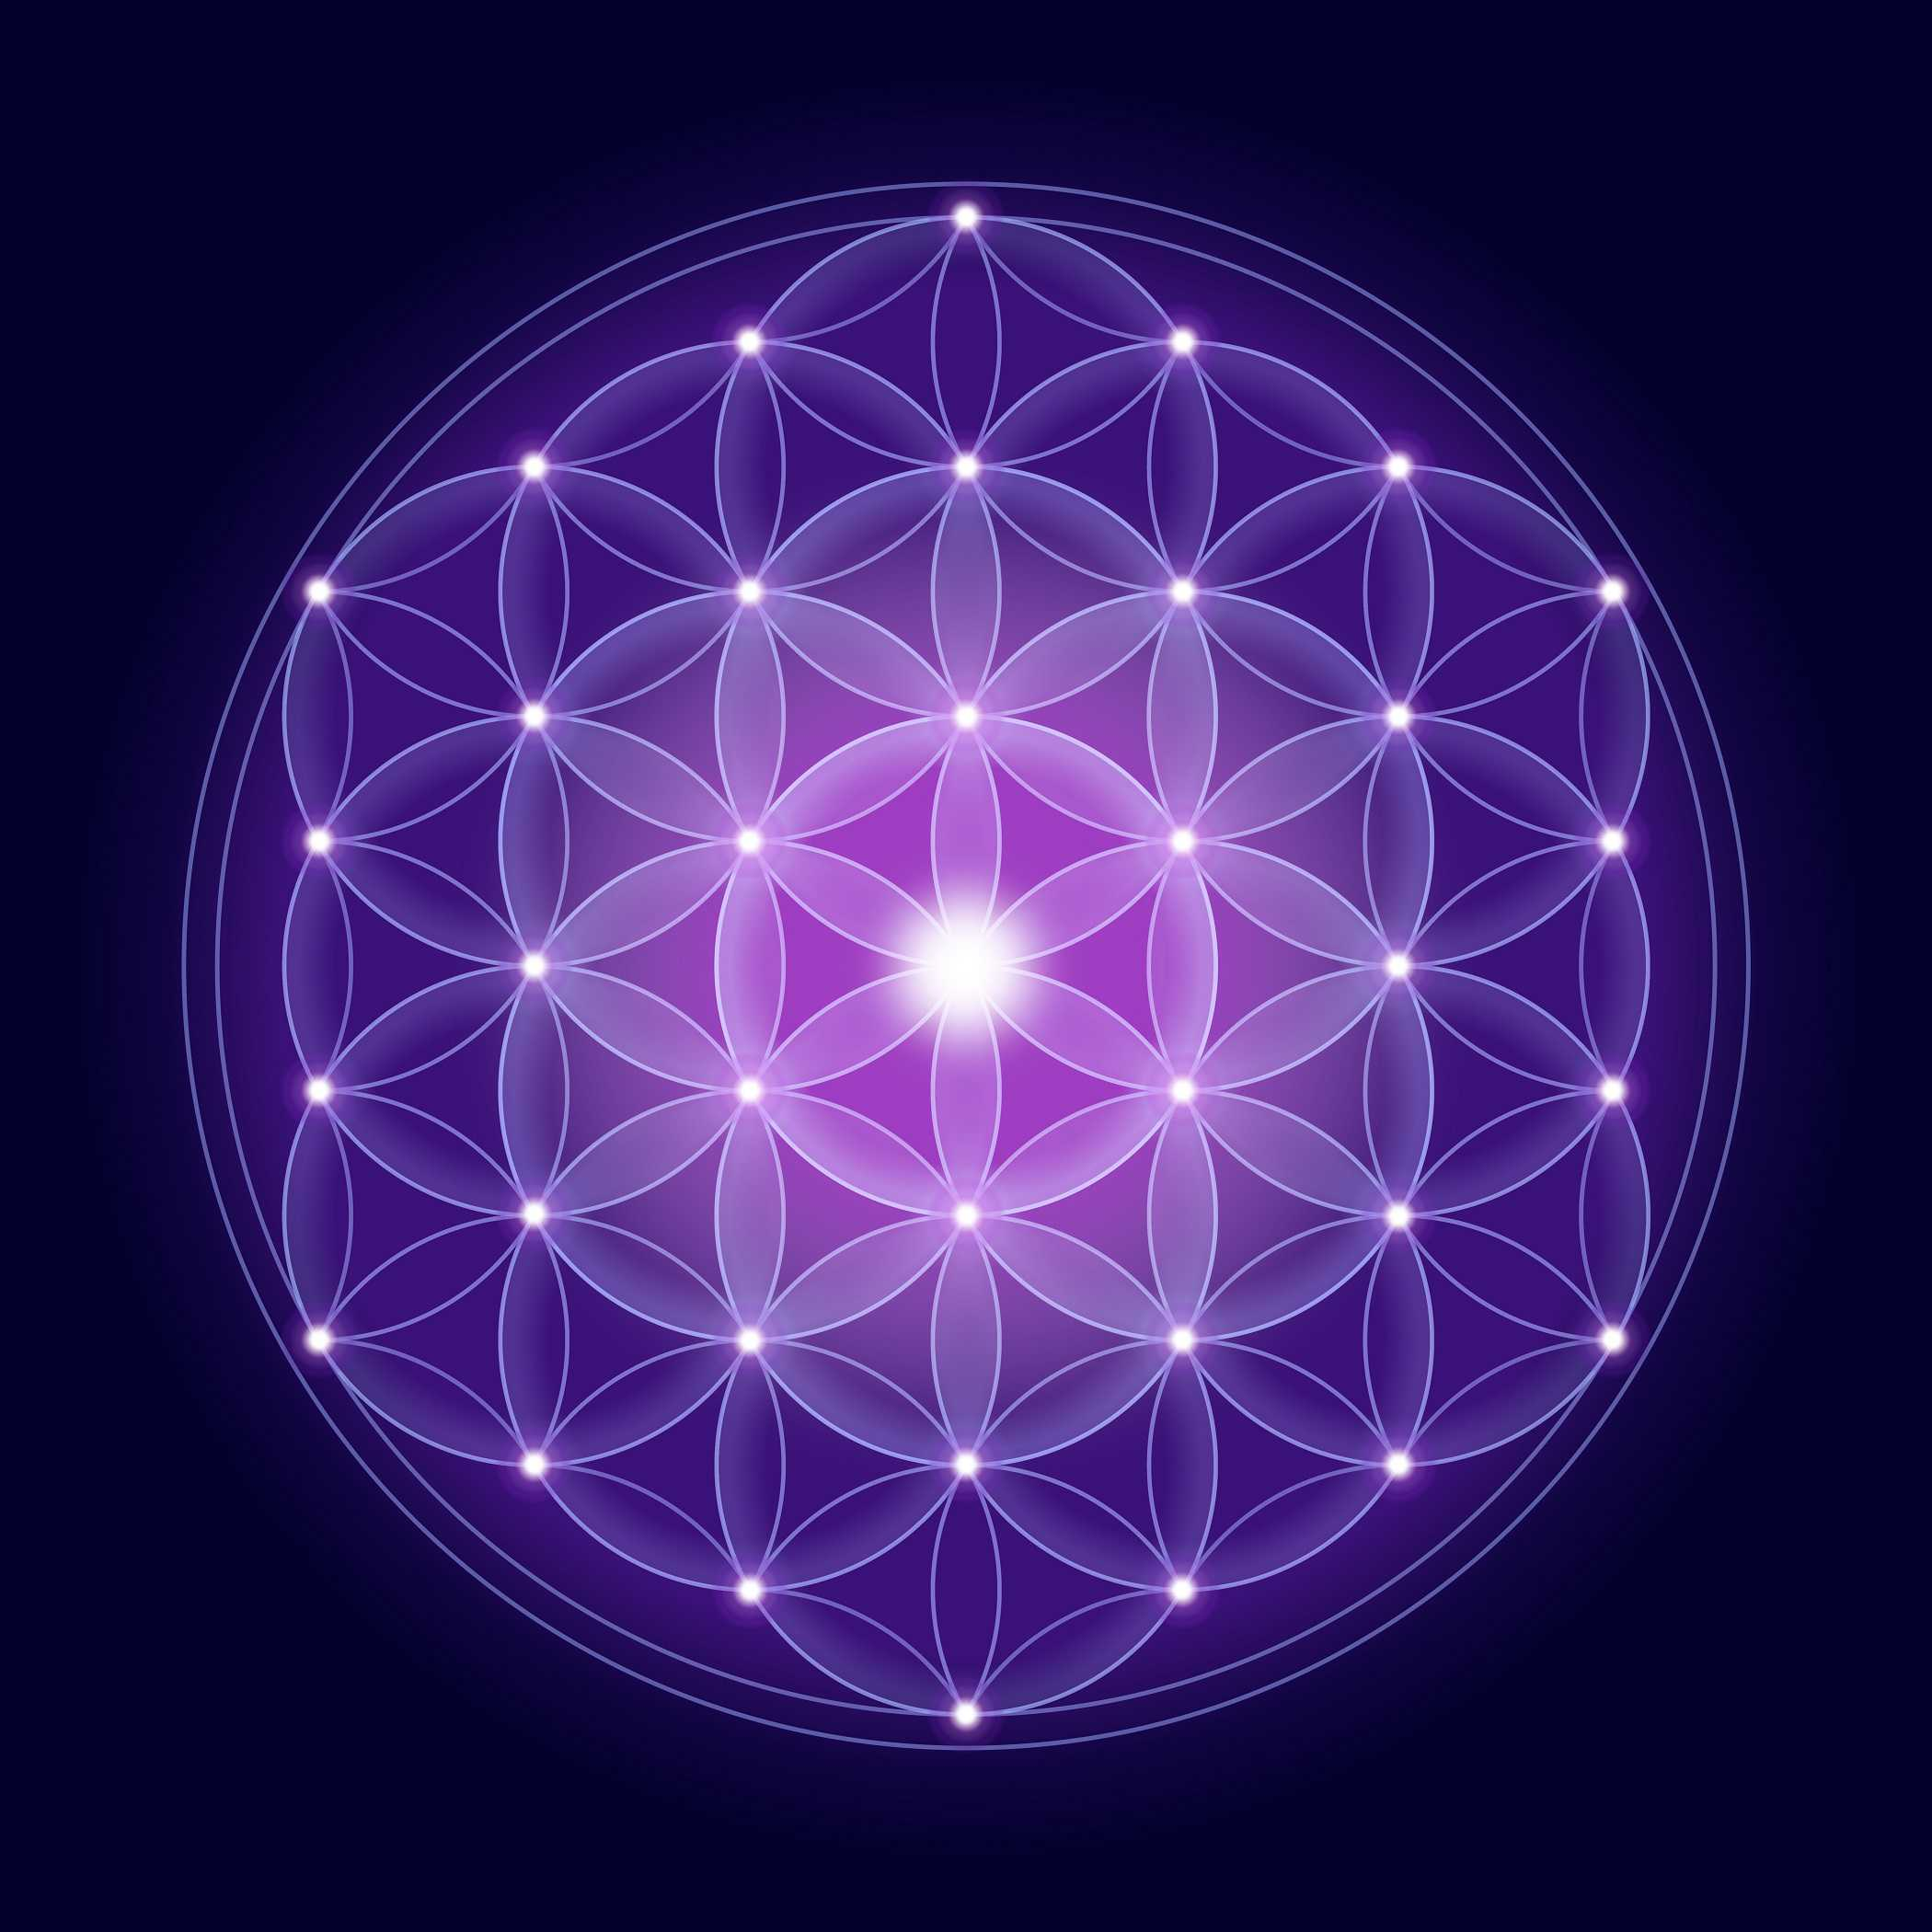 The Flower of Life Meaning and Symbolism in Sacred Geometry